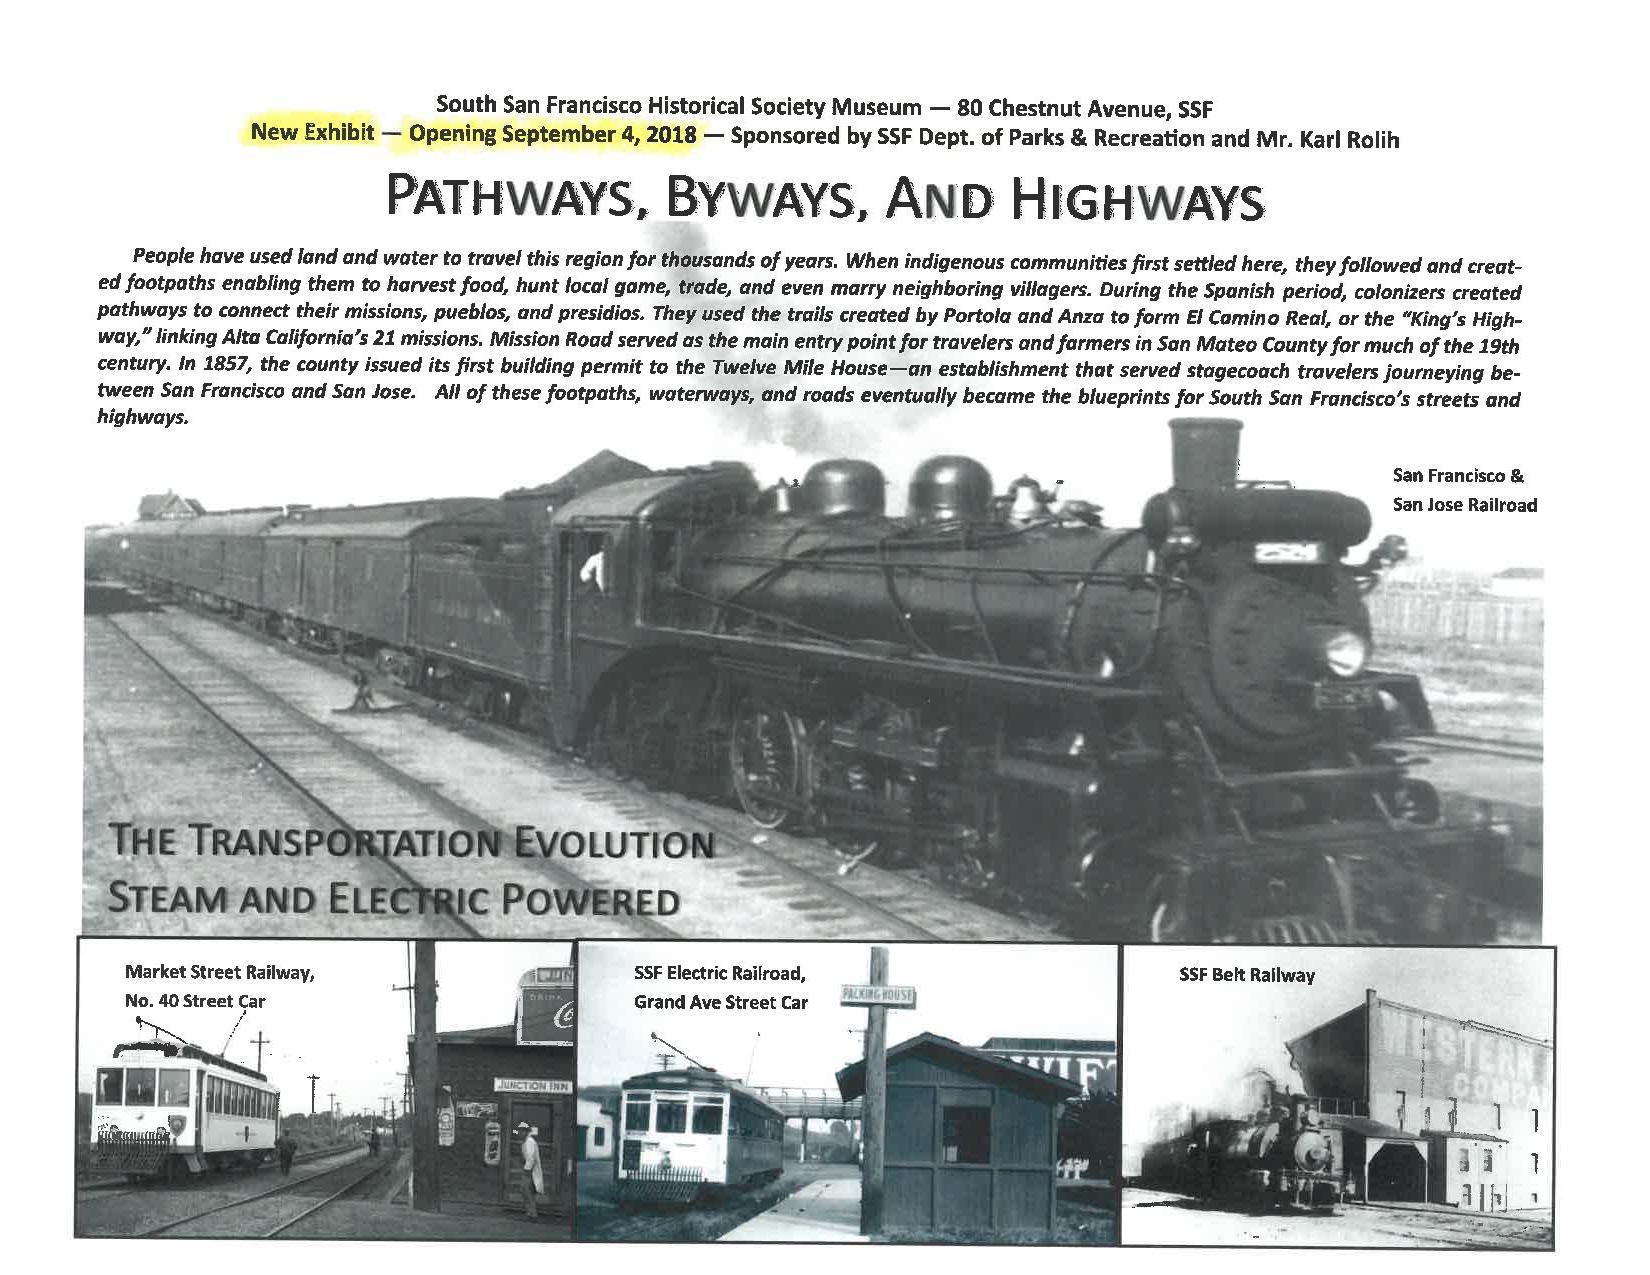 Pathways, Byways, and Highways; A New Historical Society Museum Exhibit